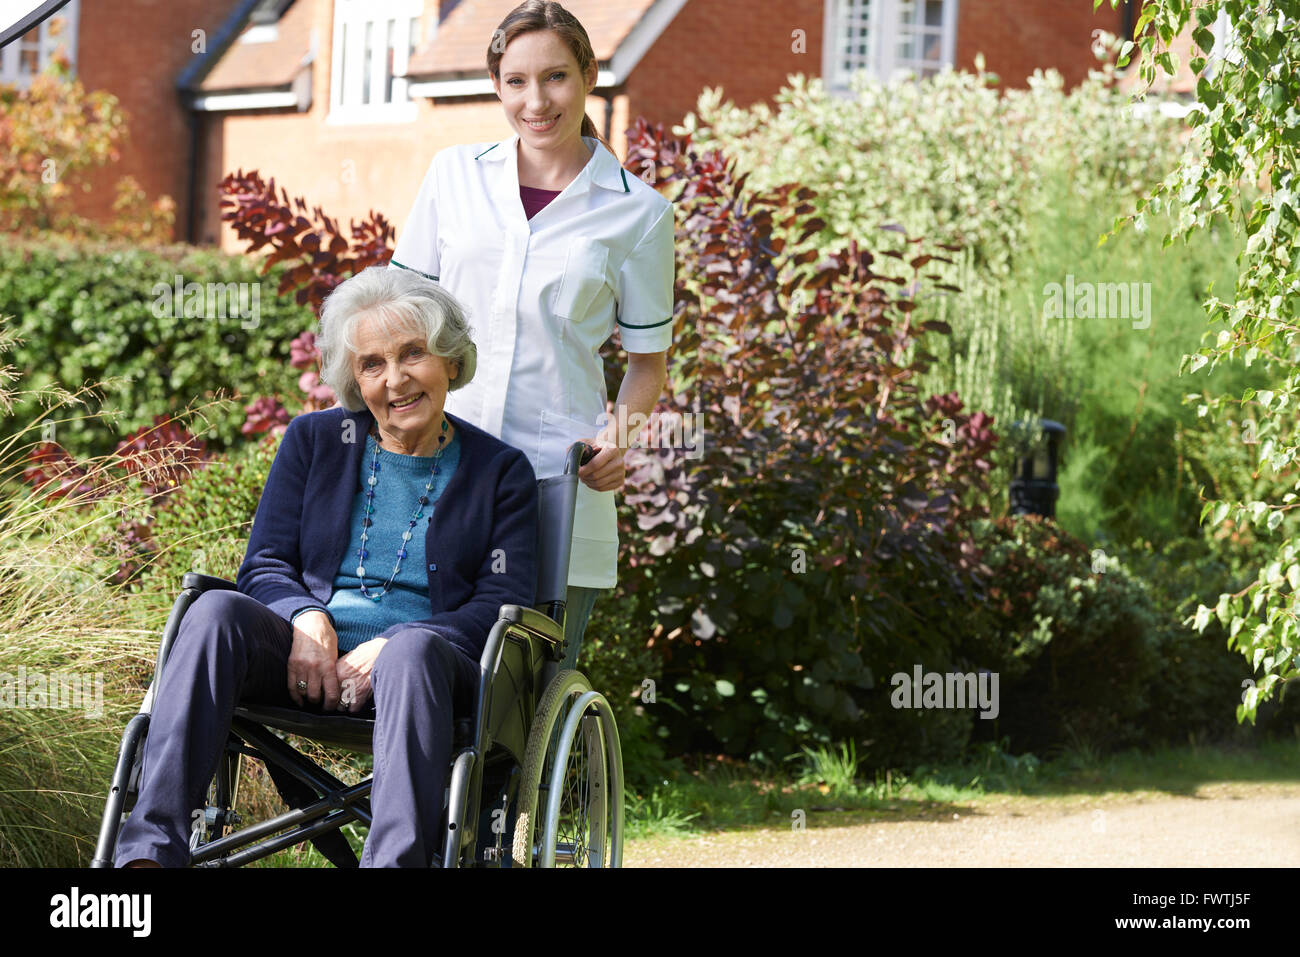 Portrait Of Carer Pushing Senior Woman In Wheelchair - Stock Image